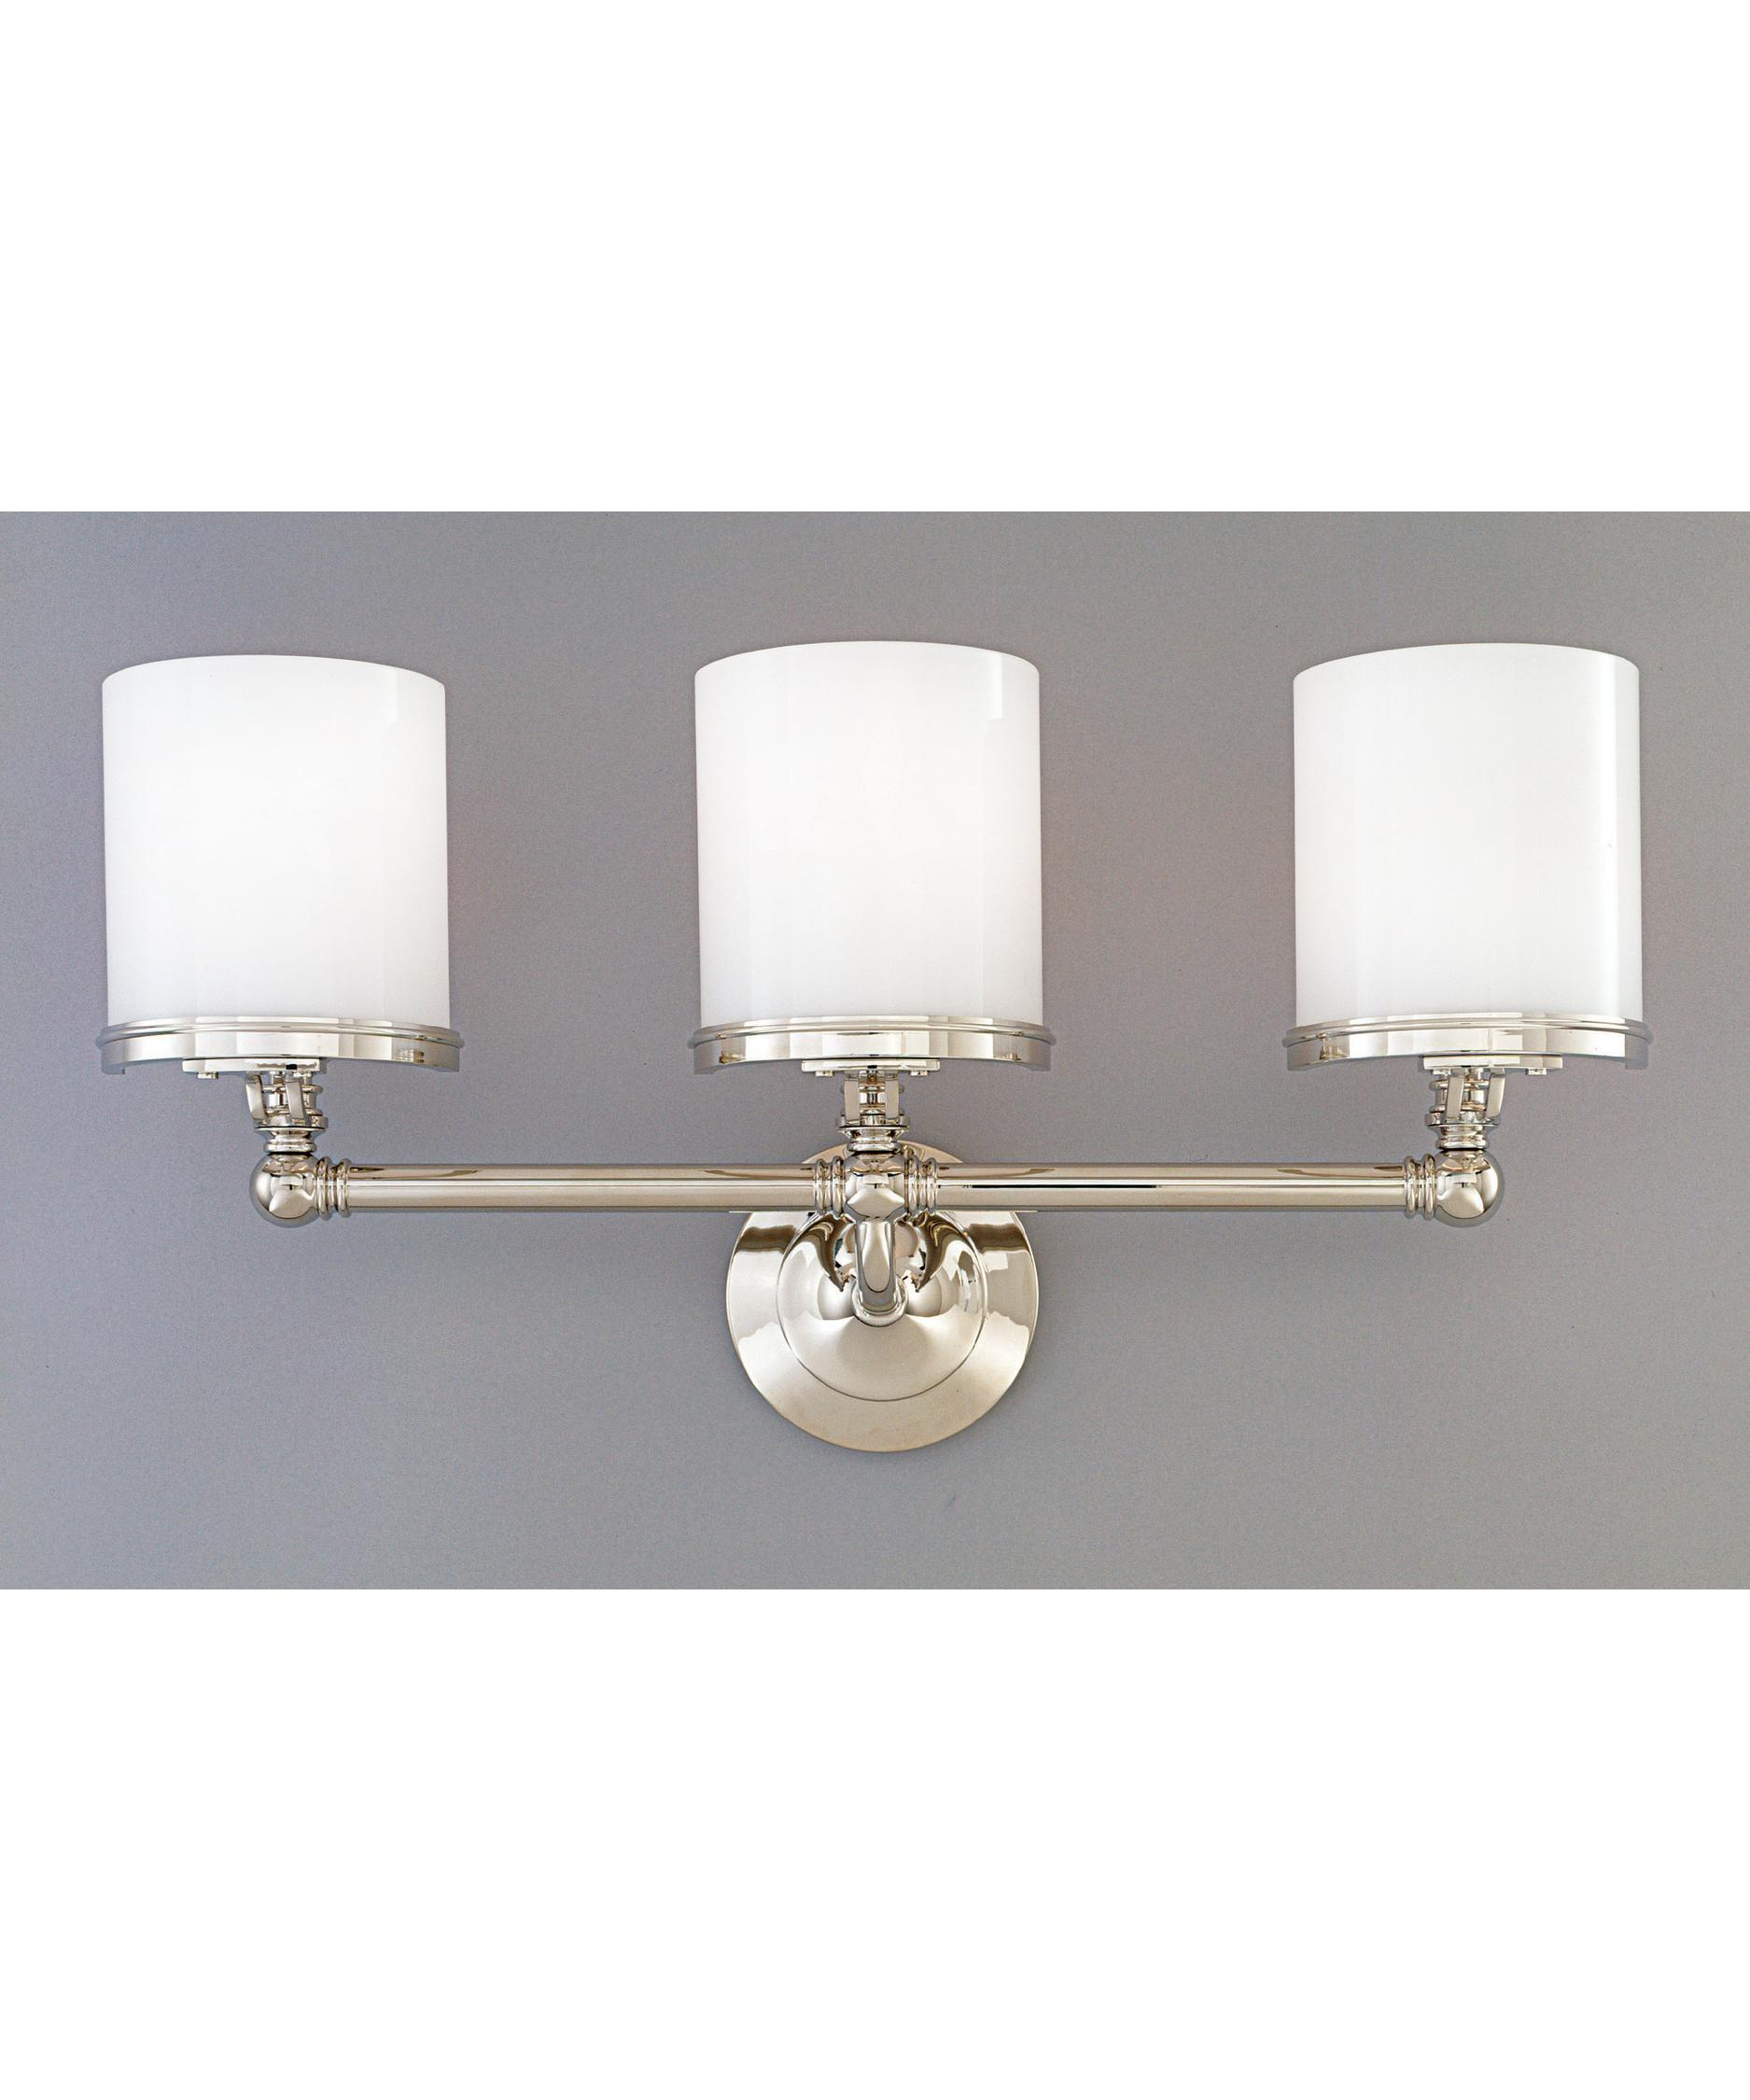 Bathroom Vanity Lights Polished Nickel hudson valley 943 lowell 23 inch wide bath vanity light | capitol